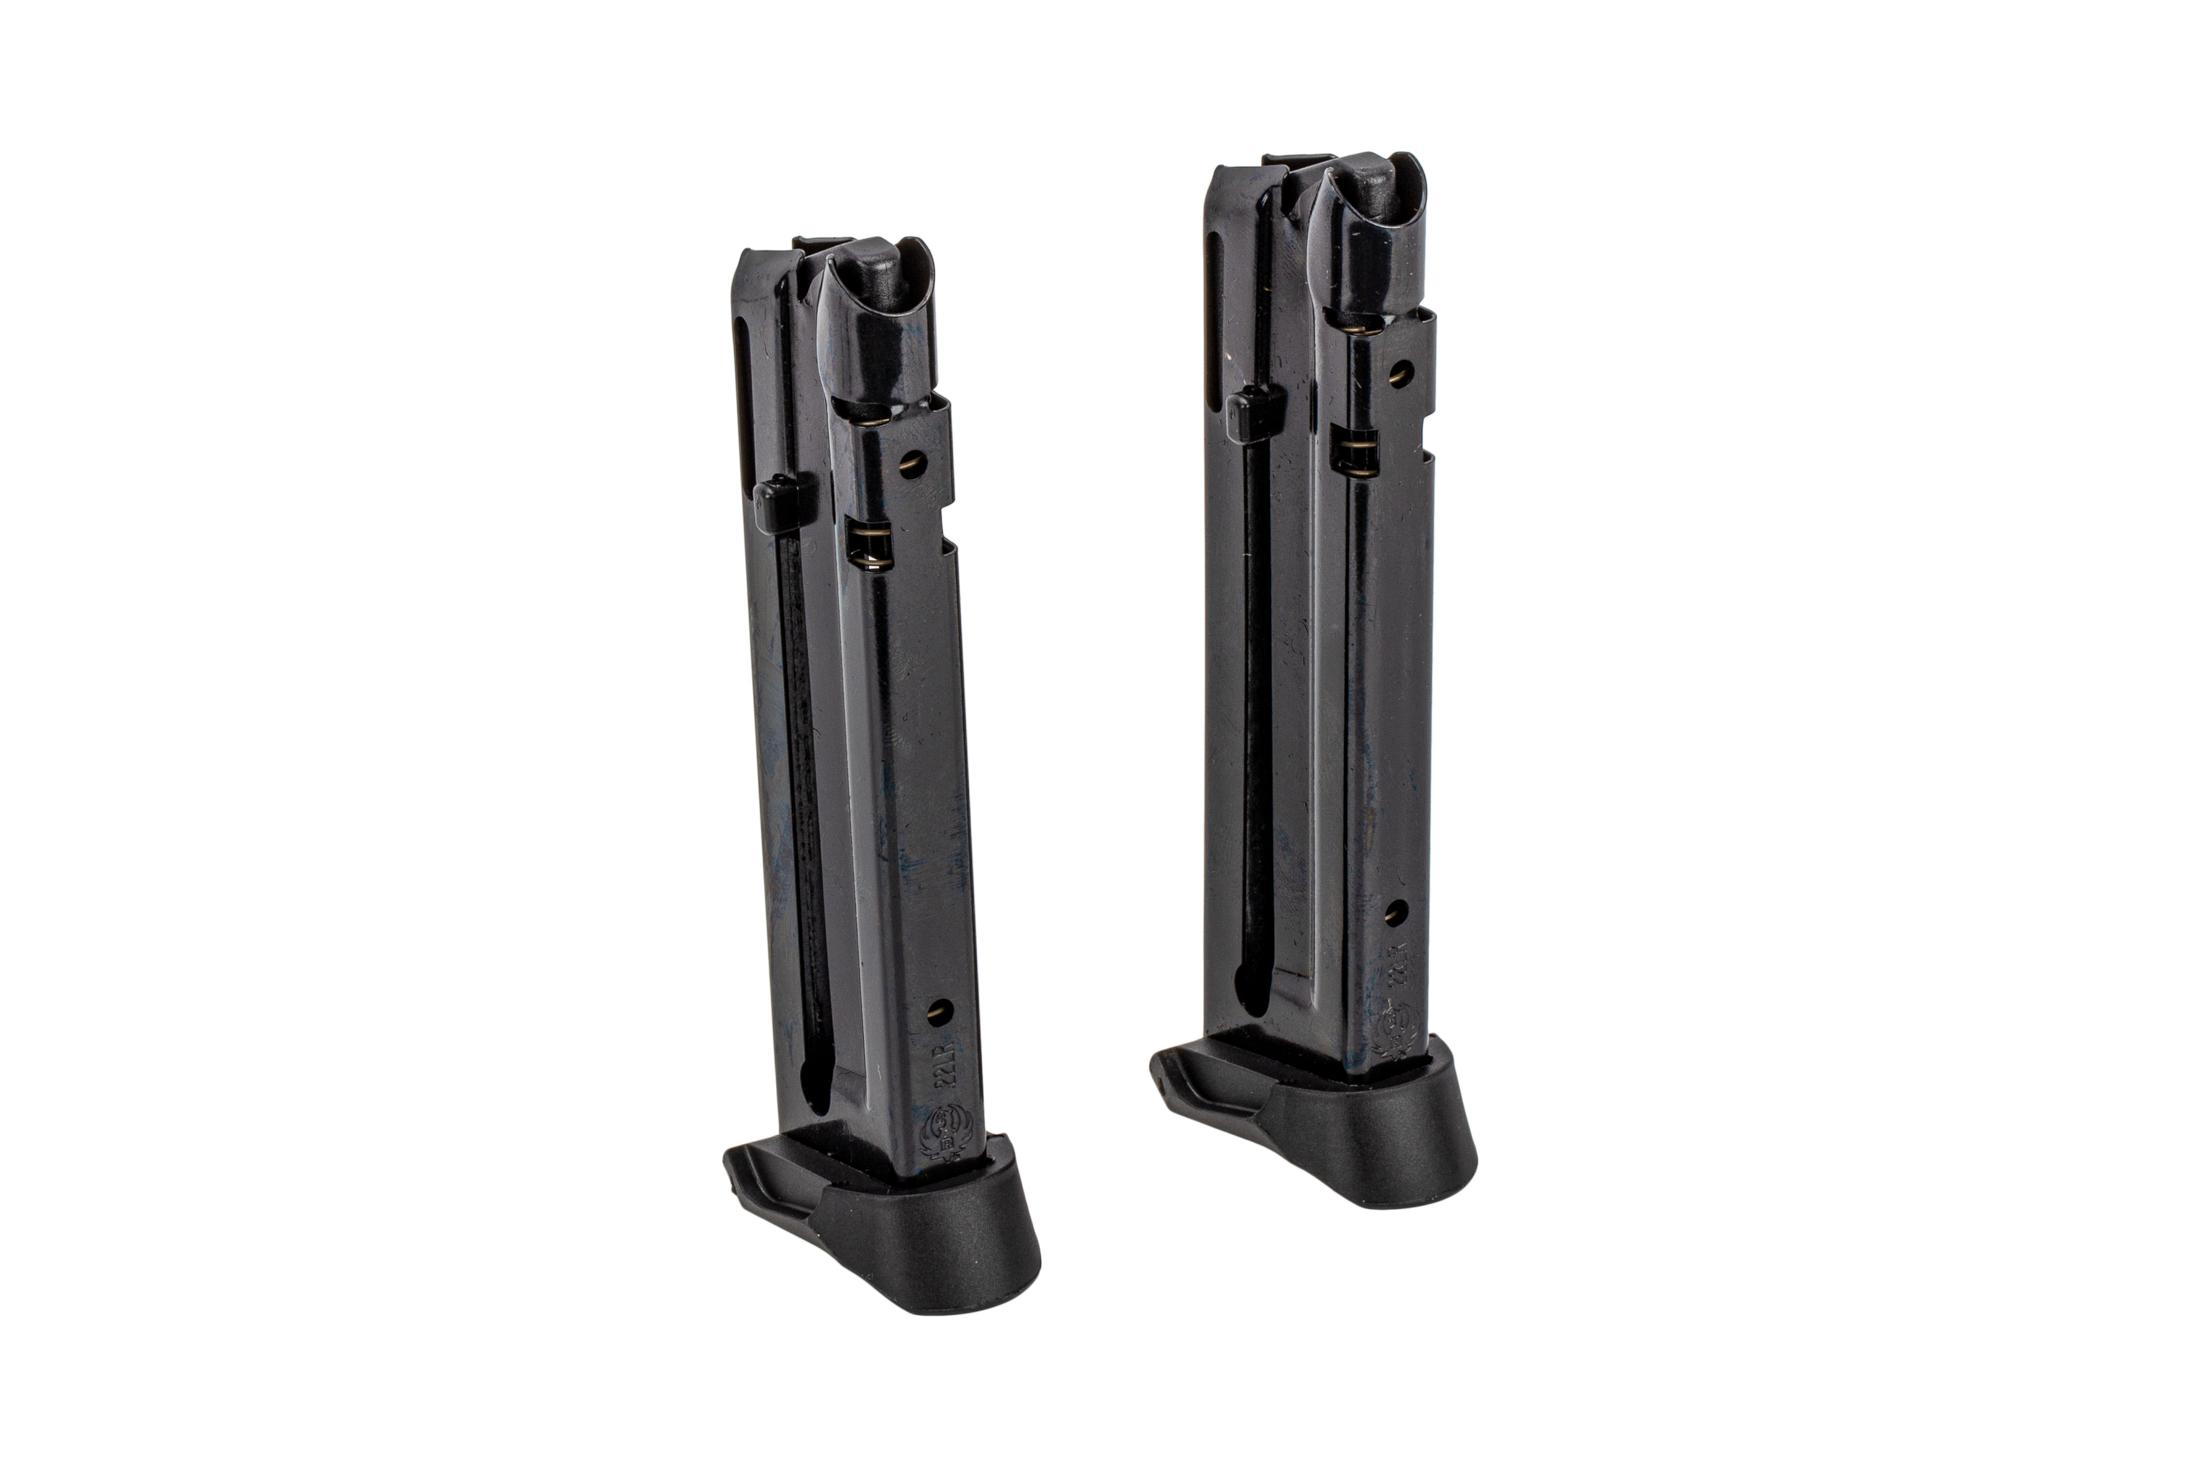 Ruger 22-round .22 LR magazine for the SR22 is a highly reliable full capacity magazine with tough steel body.